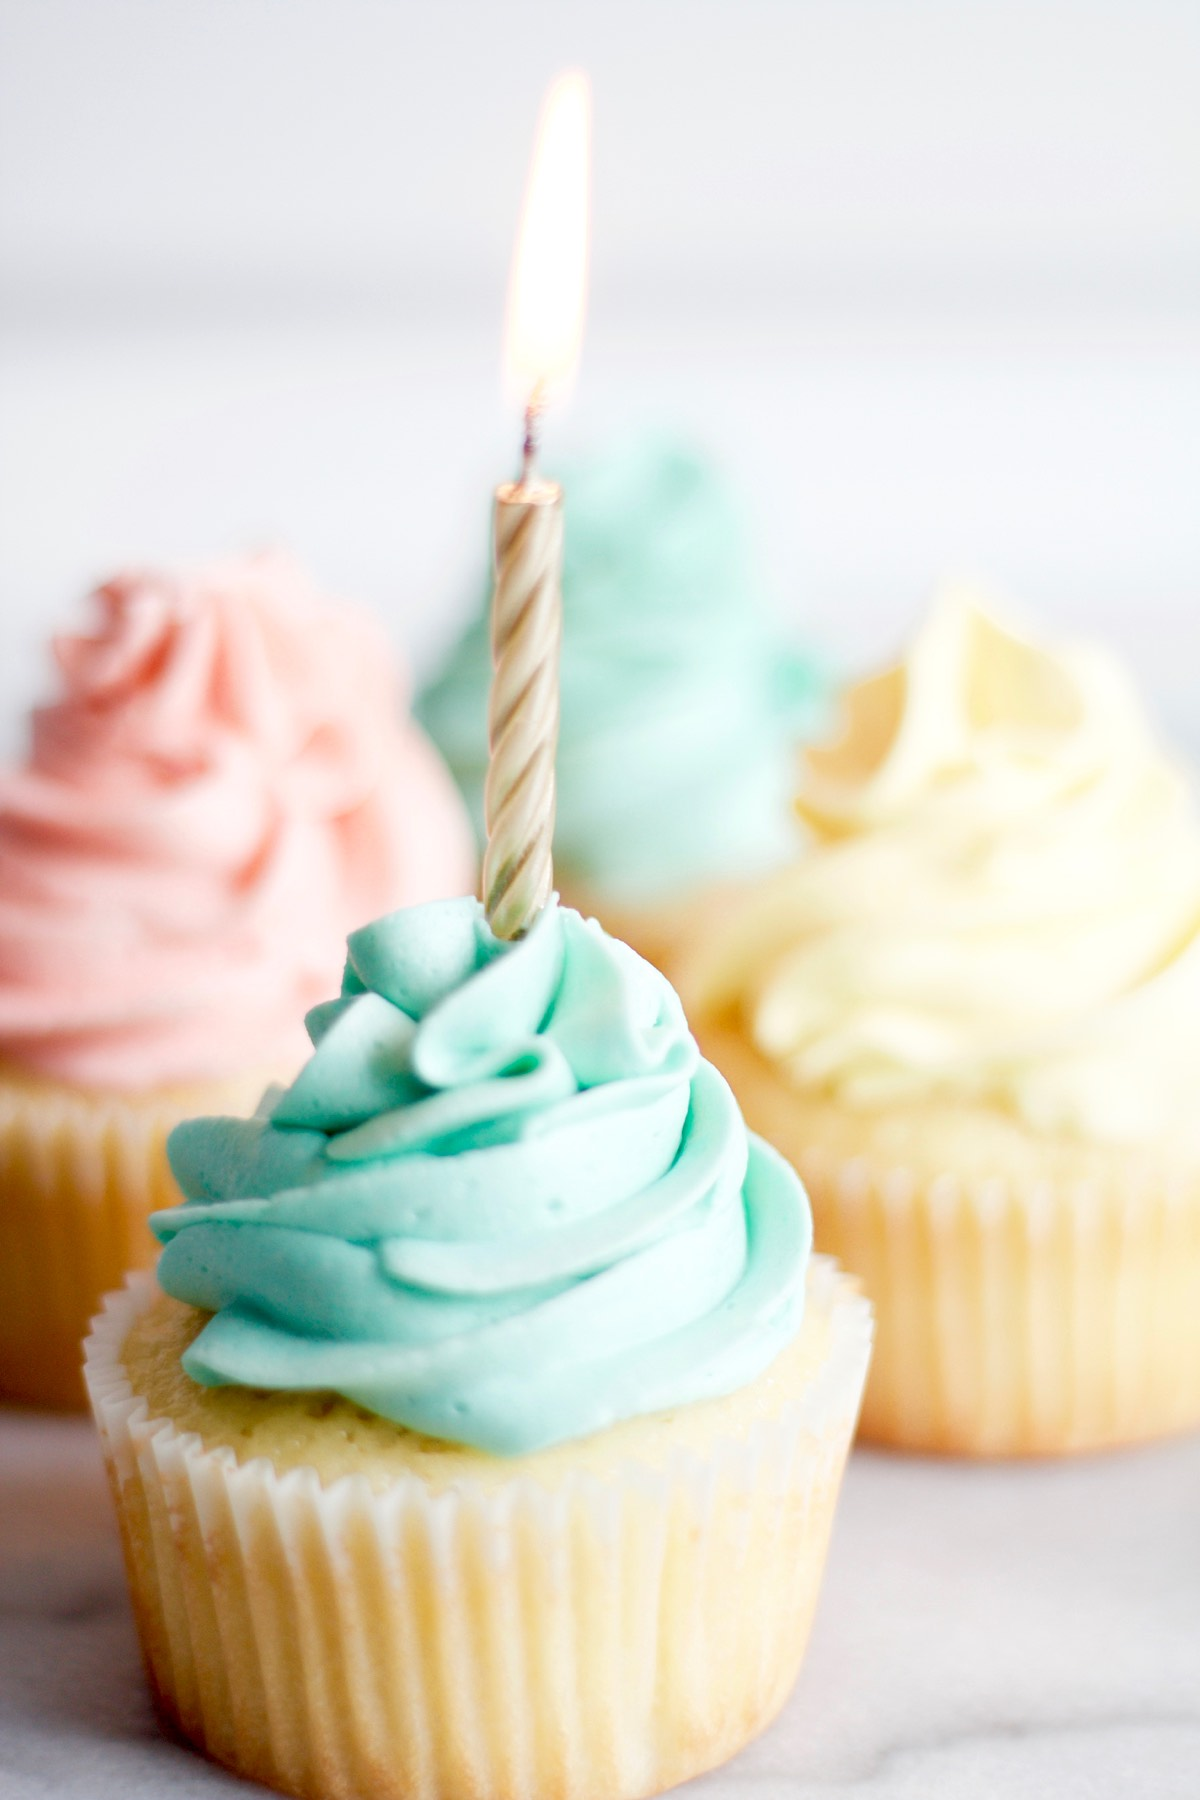 Vanilla Birthday Cupcakes with a lighted candel